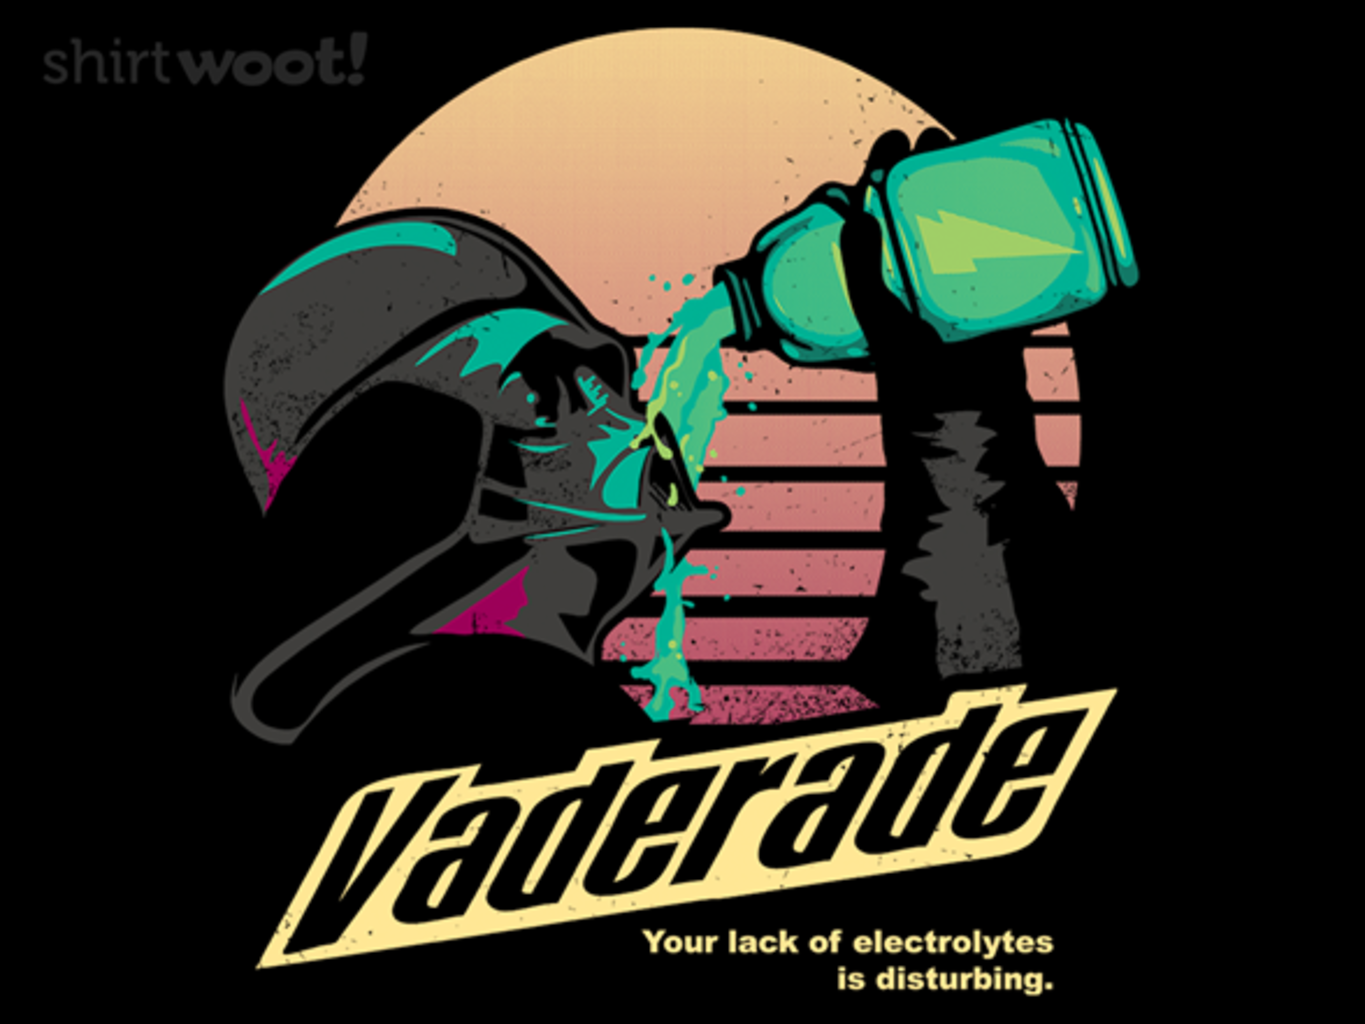 Woot!: Not Your Father's Sports Drink